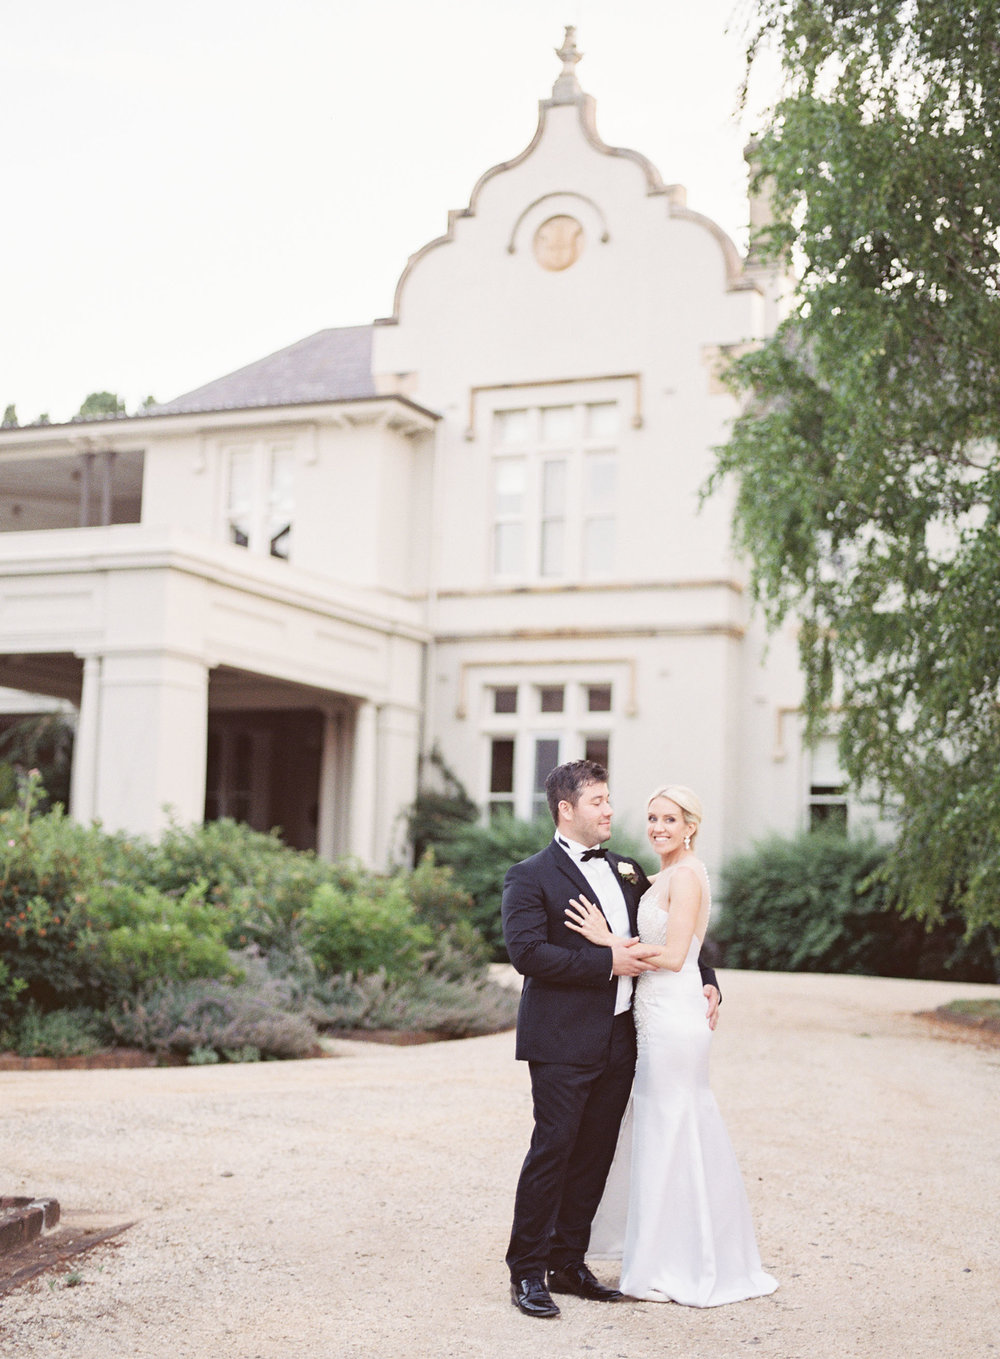 Hopewood House - Kylie & Gabriel - Wedding Day Gallery - Bowral Southern Highlands - ceremony and reception - shot - Couple front of Residence.jpeg